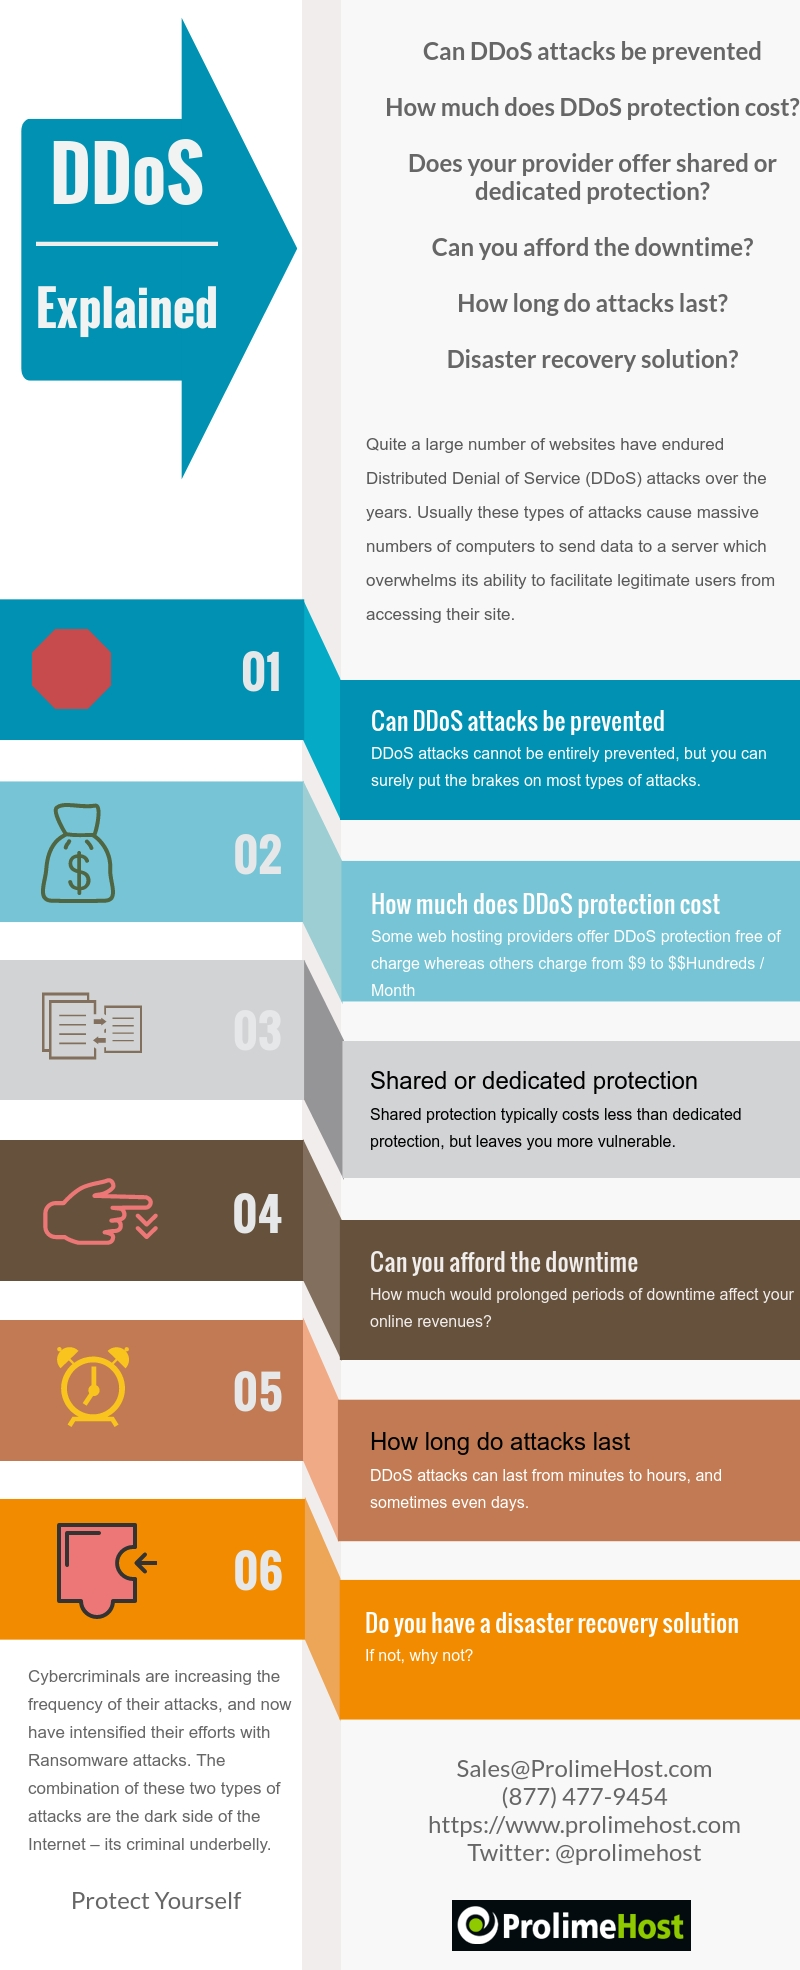 DDoS Explained Infographic